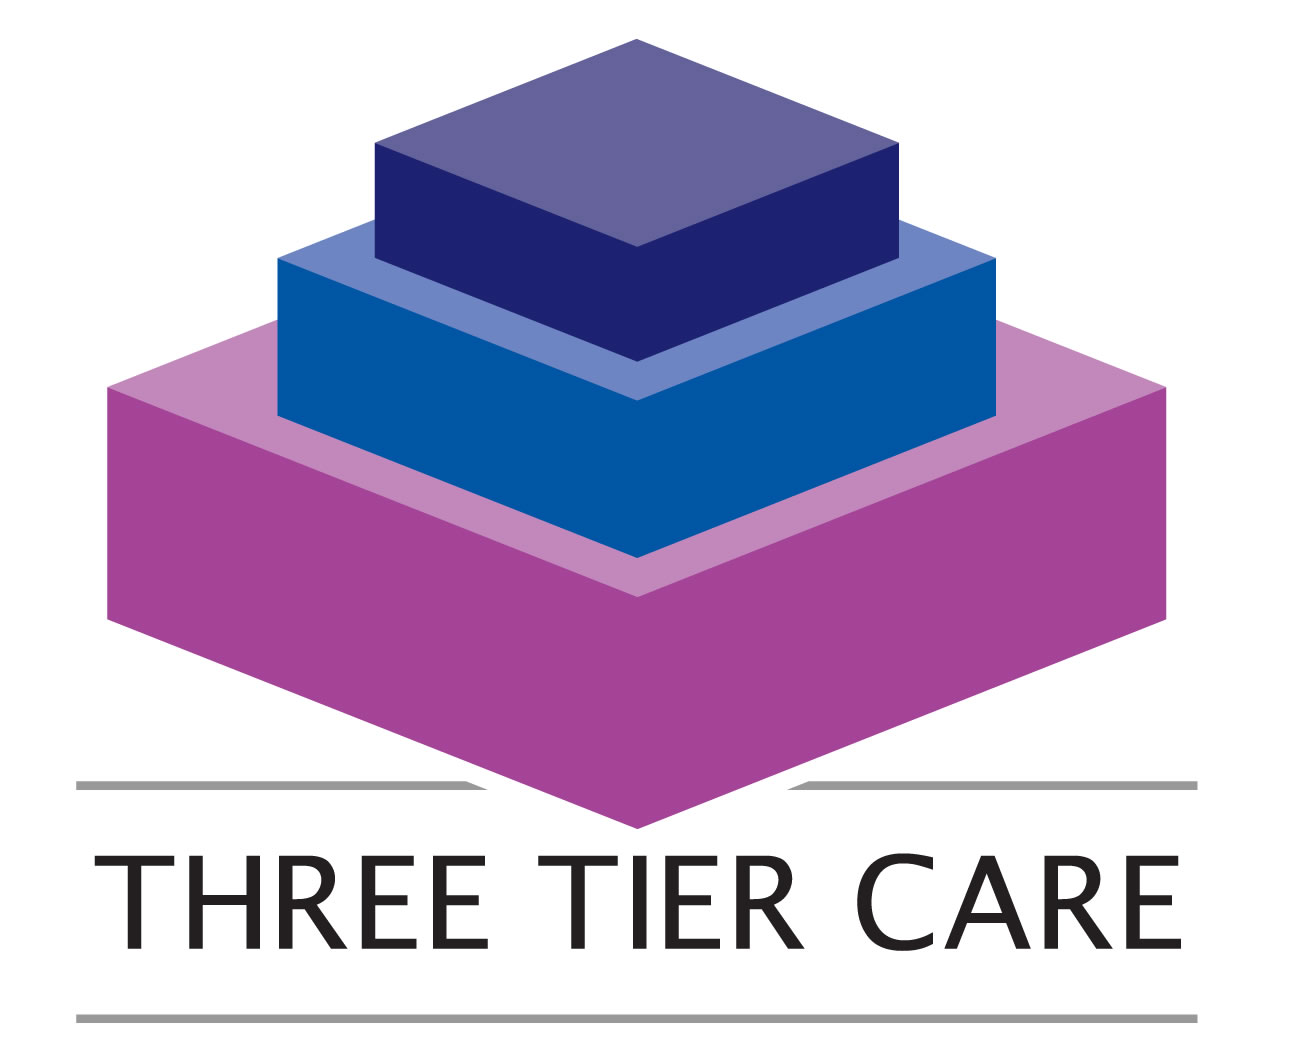 Three Tier Care